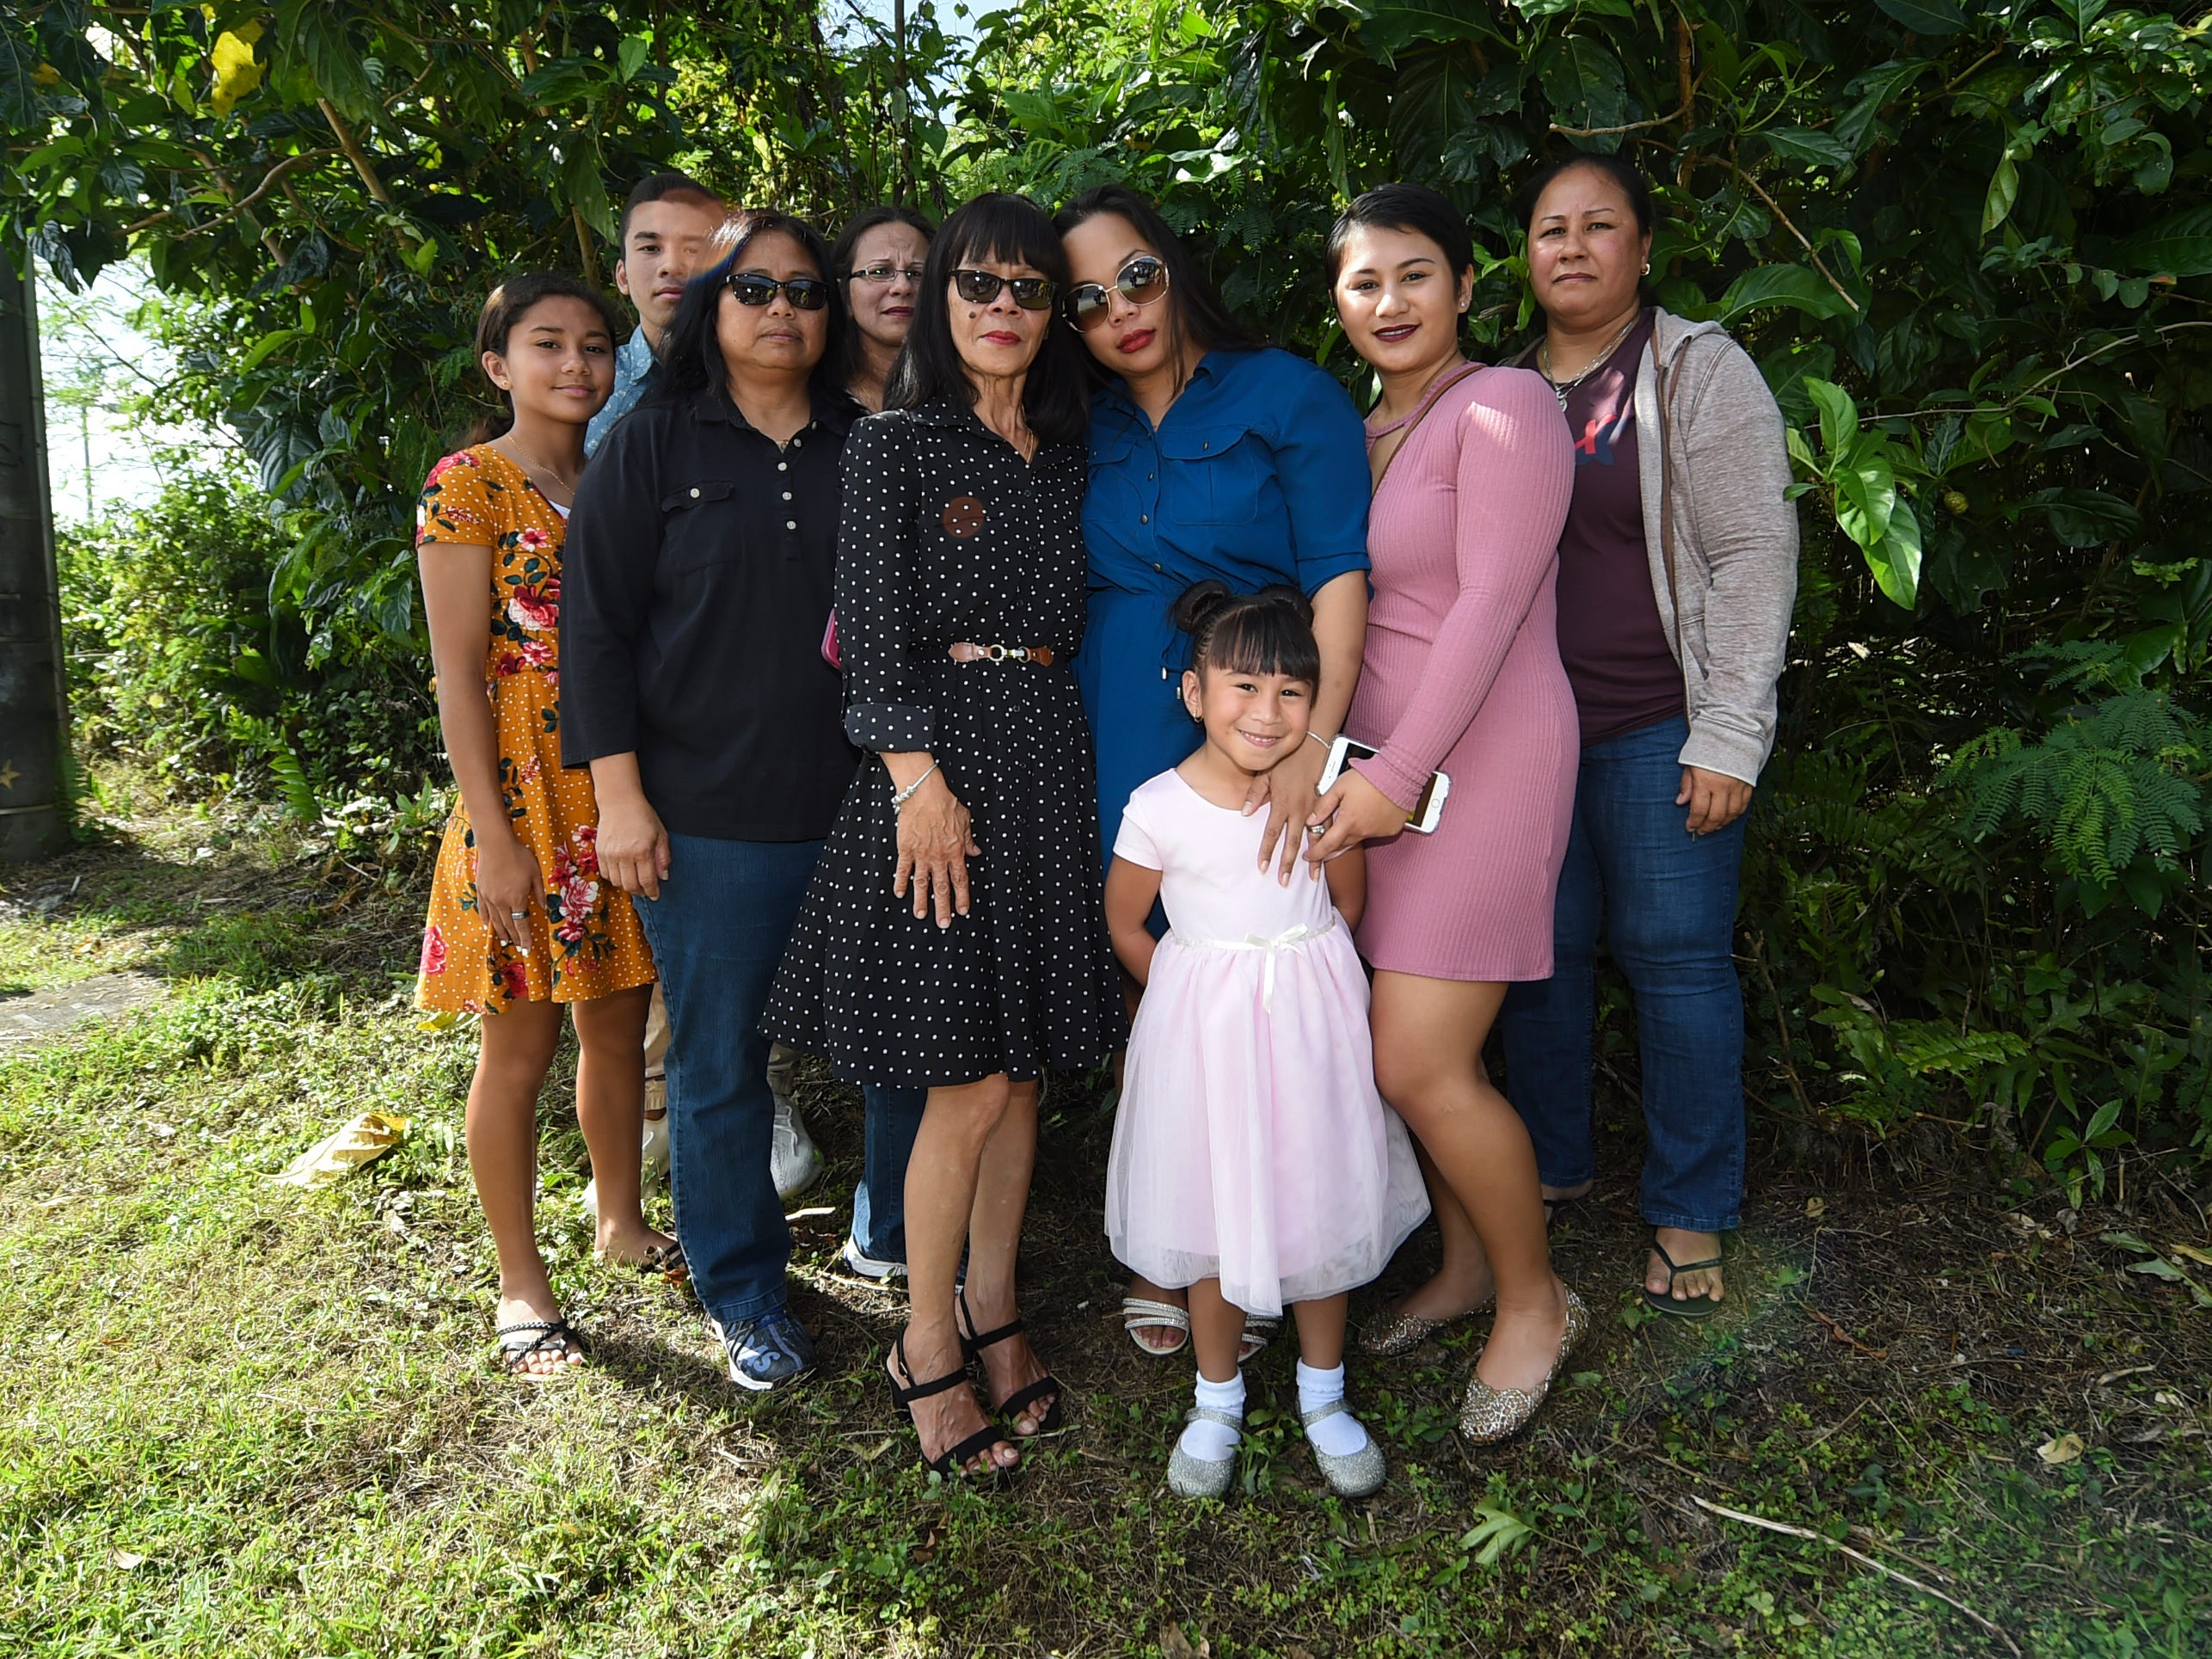 Relatives of the late Deon Cruz, 19, including his mother Charmaine Cruz, third from right, and grandmother Barbara Quidachay, center, gather for memorial photos at the Ordot crash site on Feb. 10, 2019.